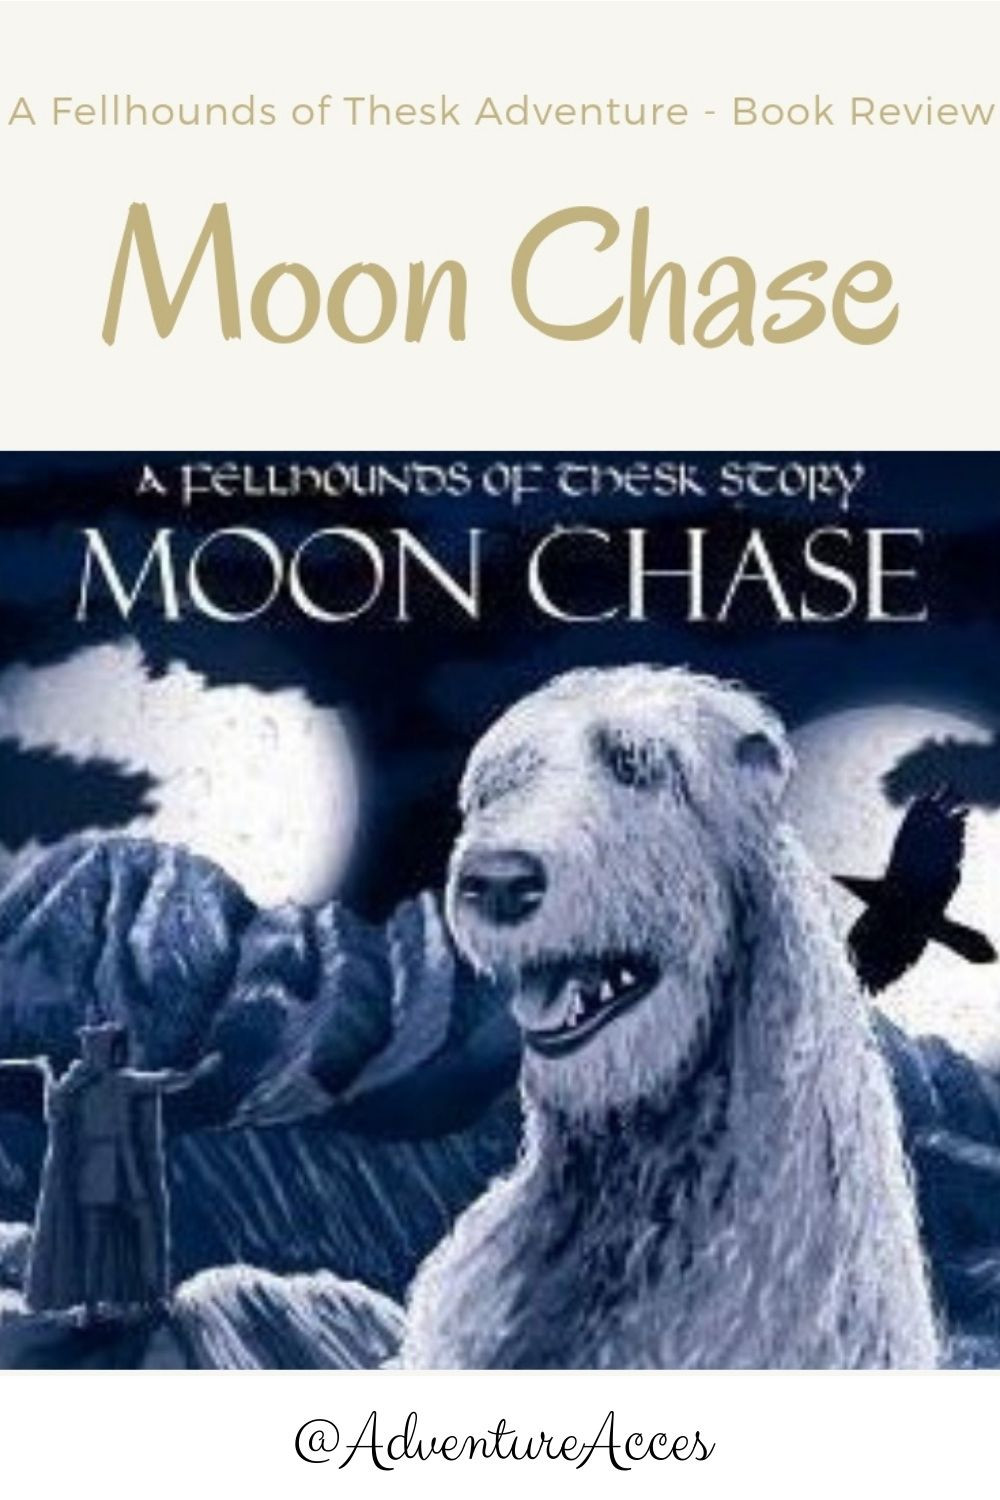 Moon Chase book review for Pinterest. Adventure Accessories